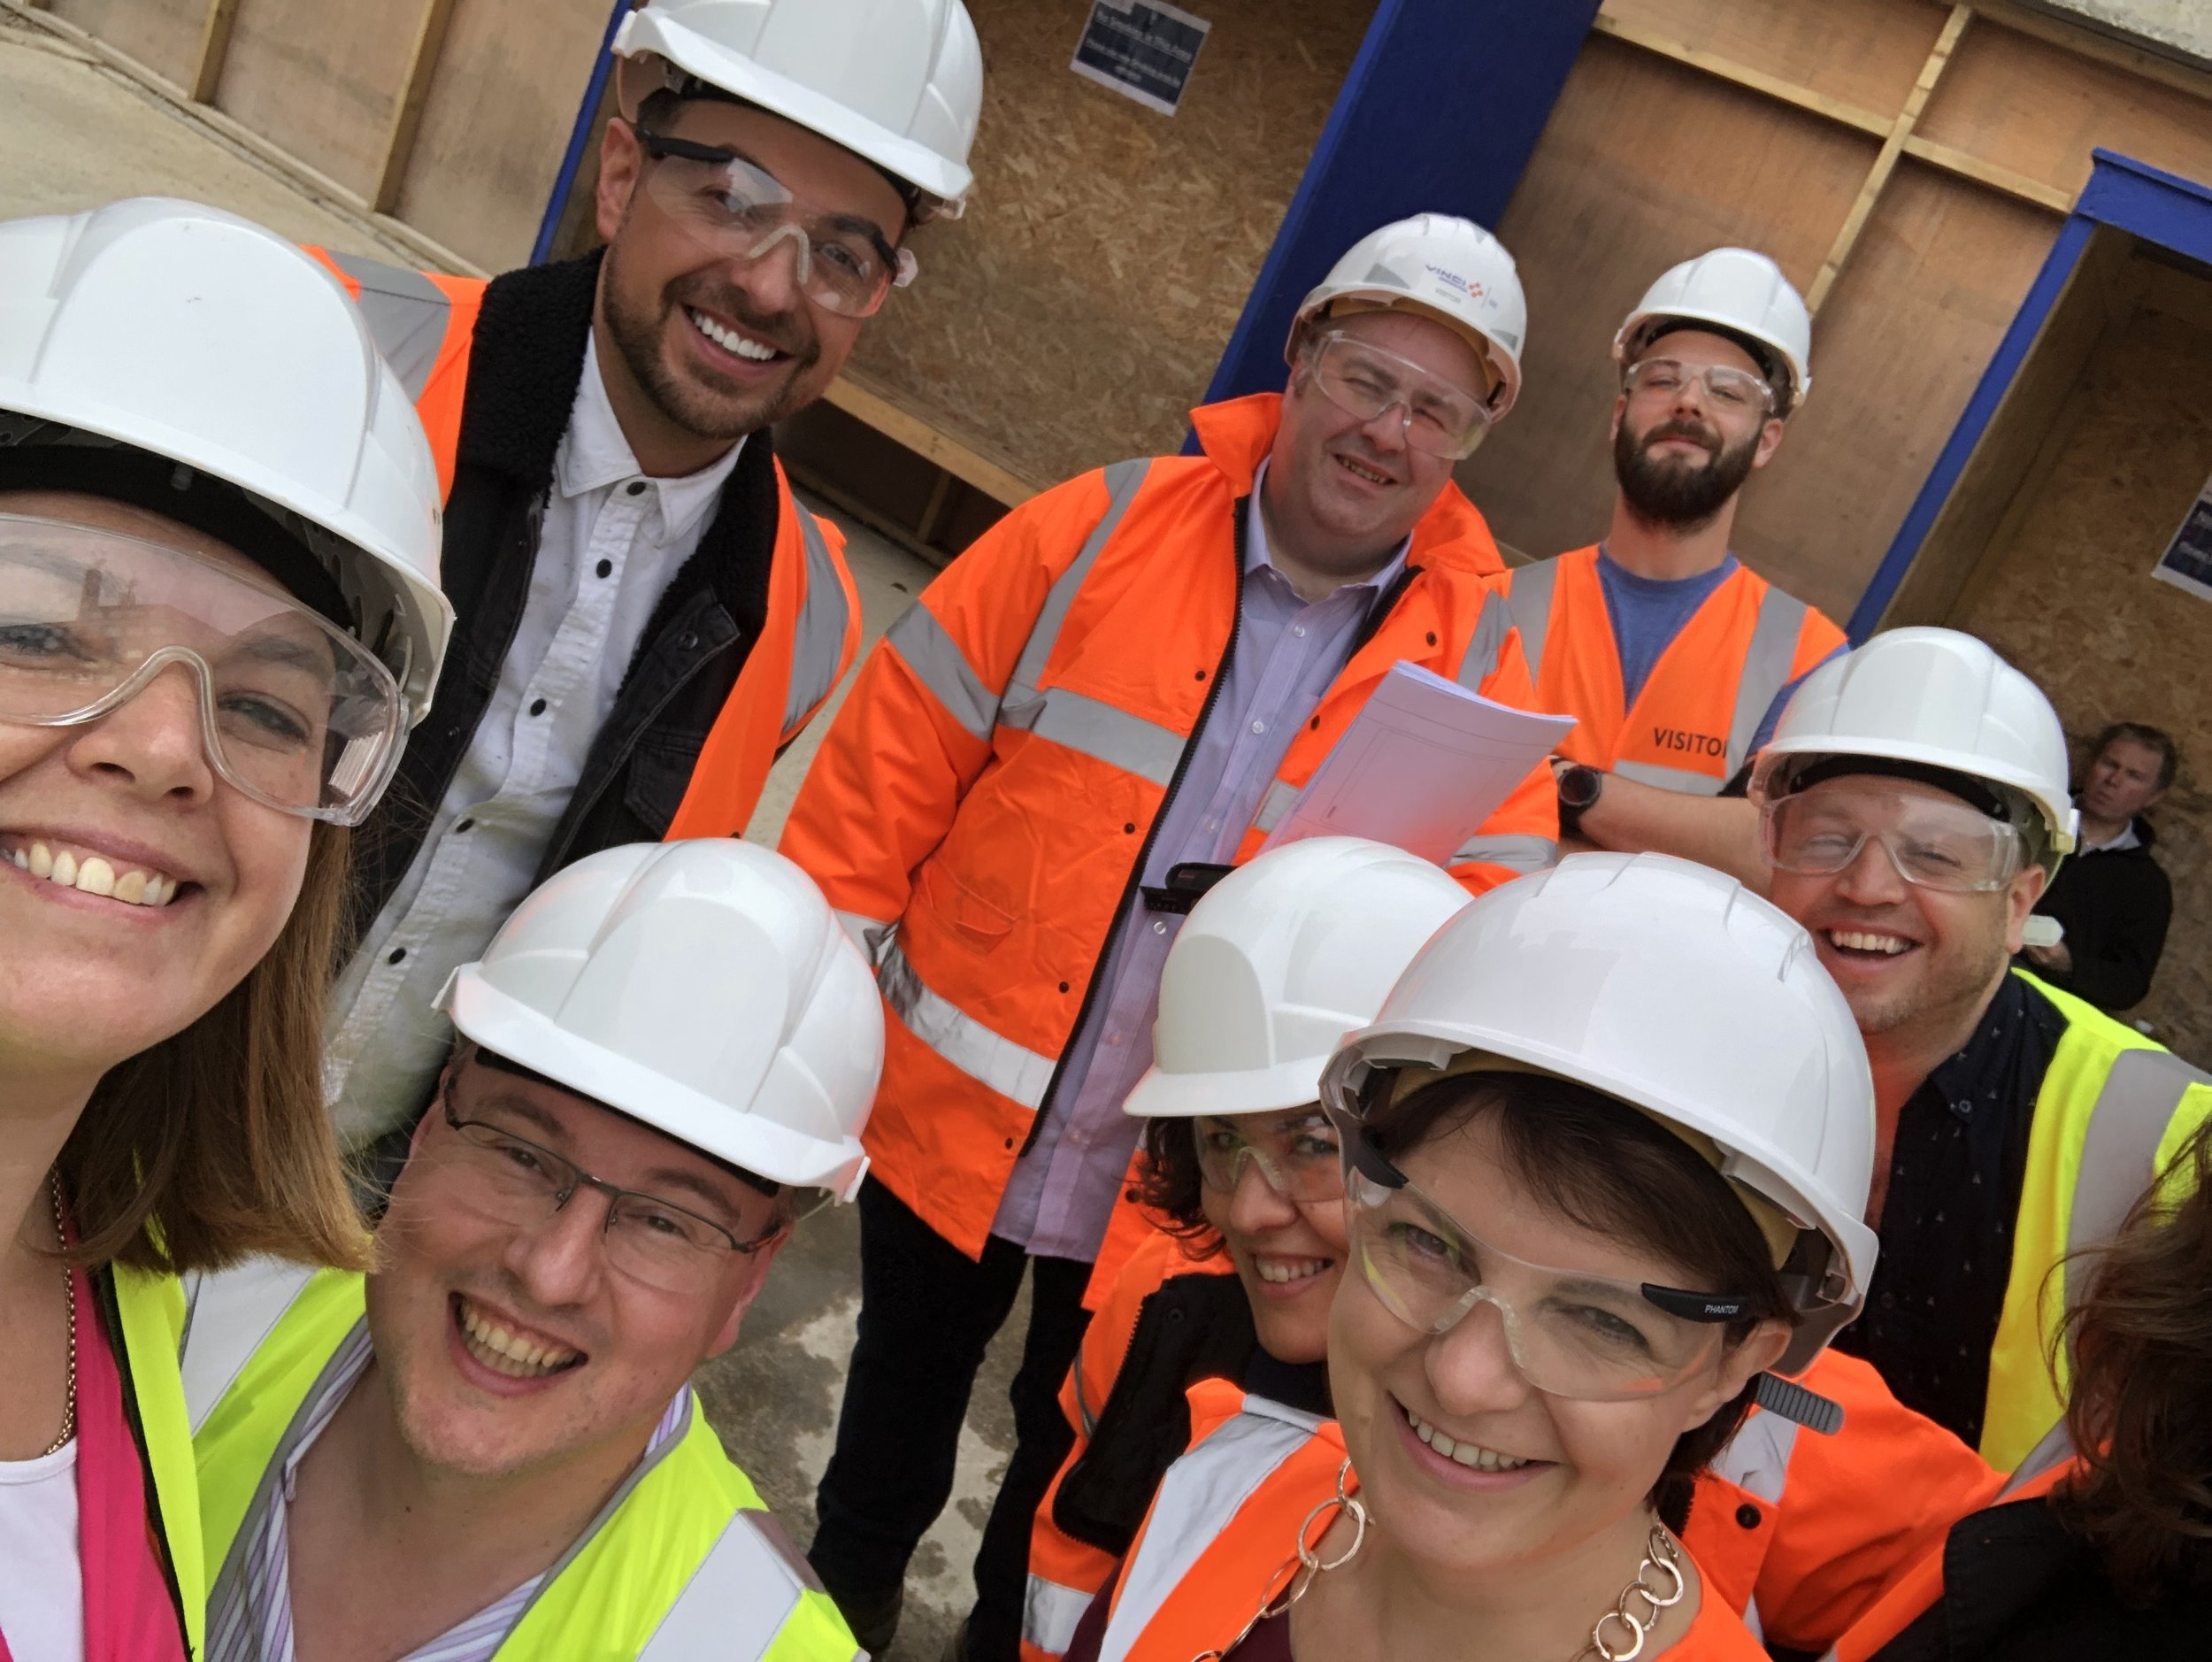 The Imagine Theatre team all ready to go on a site visit! L-R Sarah Boden (Imagine Business & Marketing Director), Mark Walters (Designer); Steve Boden (Imagine Managing Director), Dave Edmunds (Imagine Head of Operations), Laura (graphics), Laura Taylor (Imagine Production Consultant), Greg (Fairfield Halls Technical) and George Wood (Director)